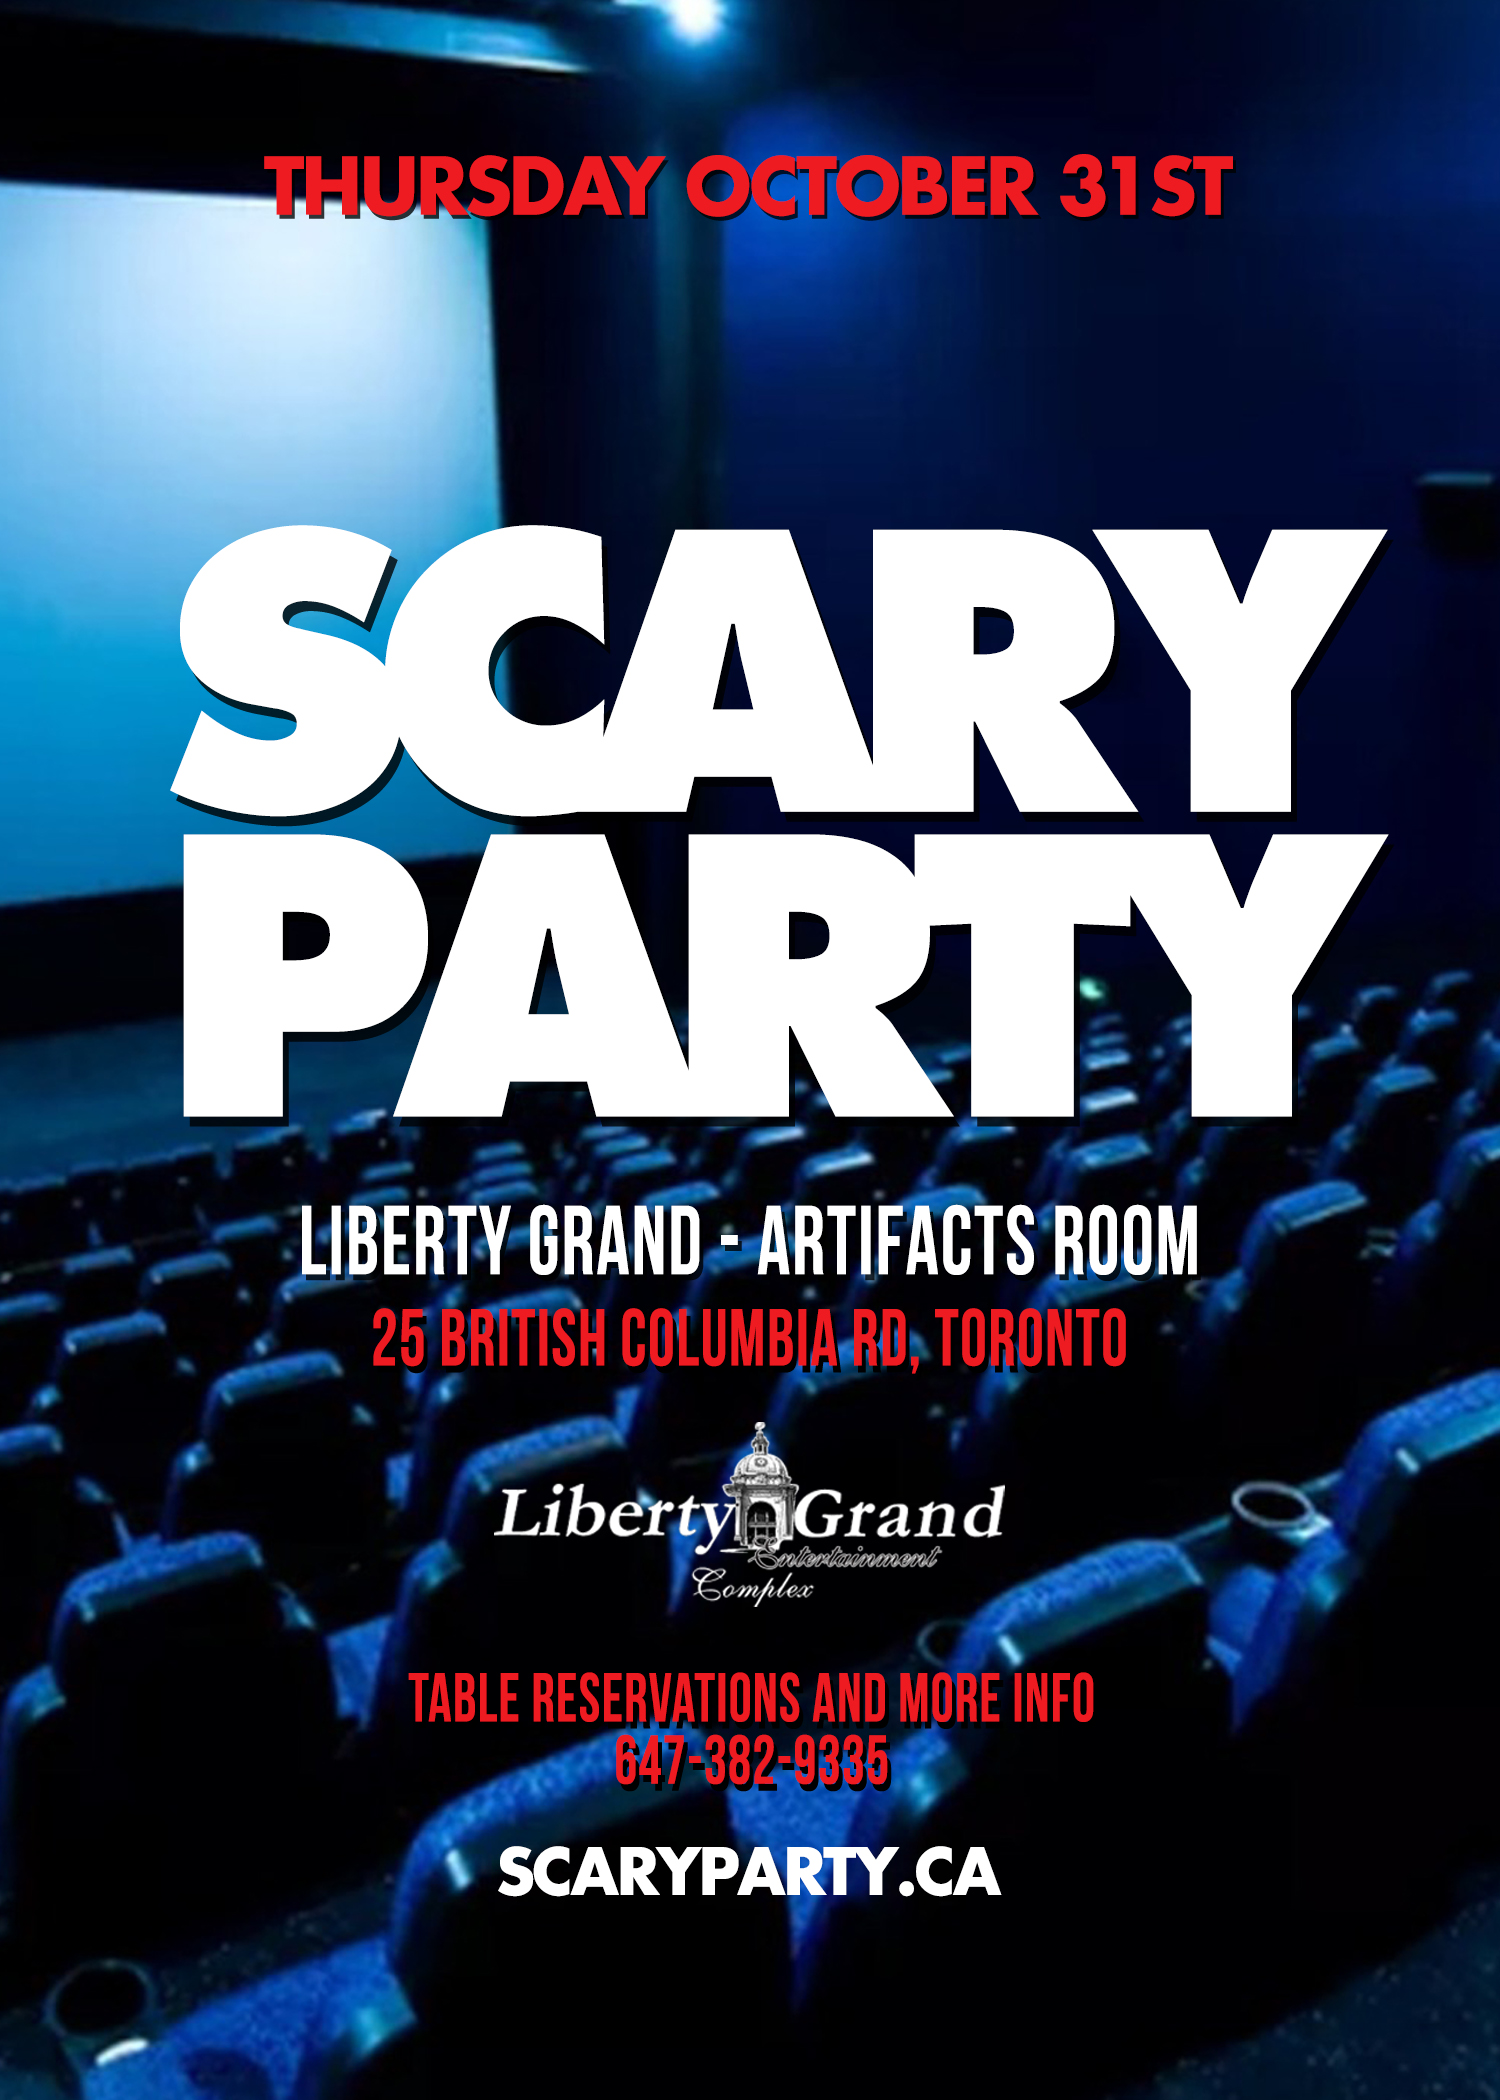 SCARY PARTY